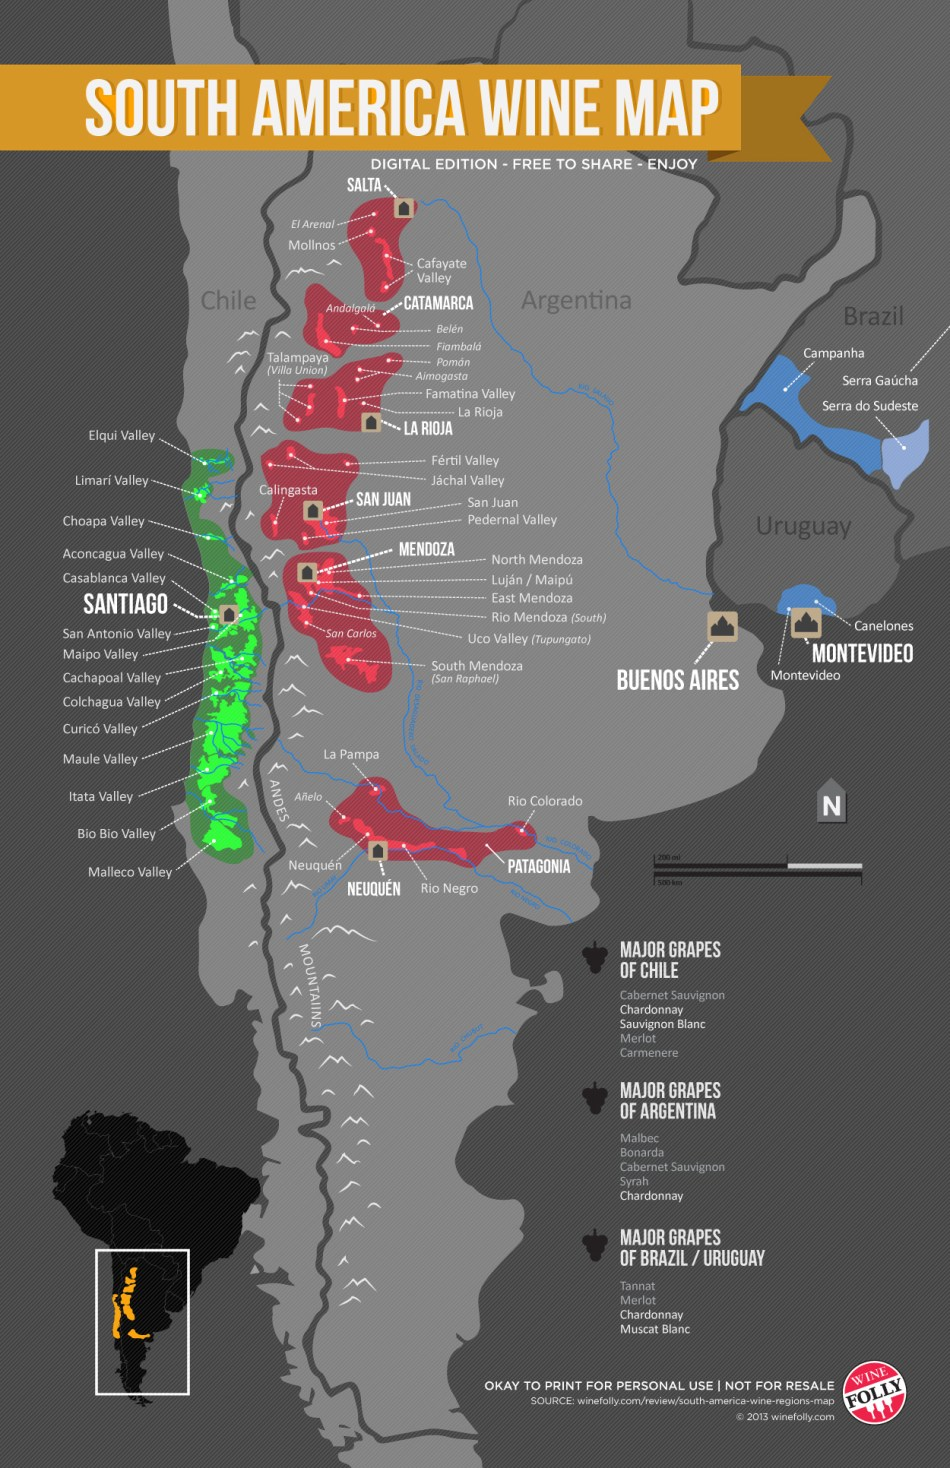 South-America-Wine-Map-wine-folly.jpg